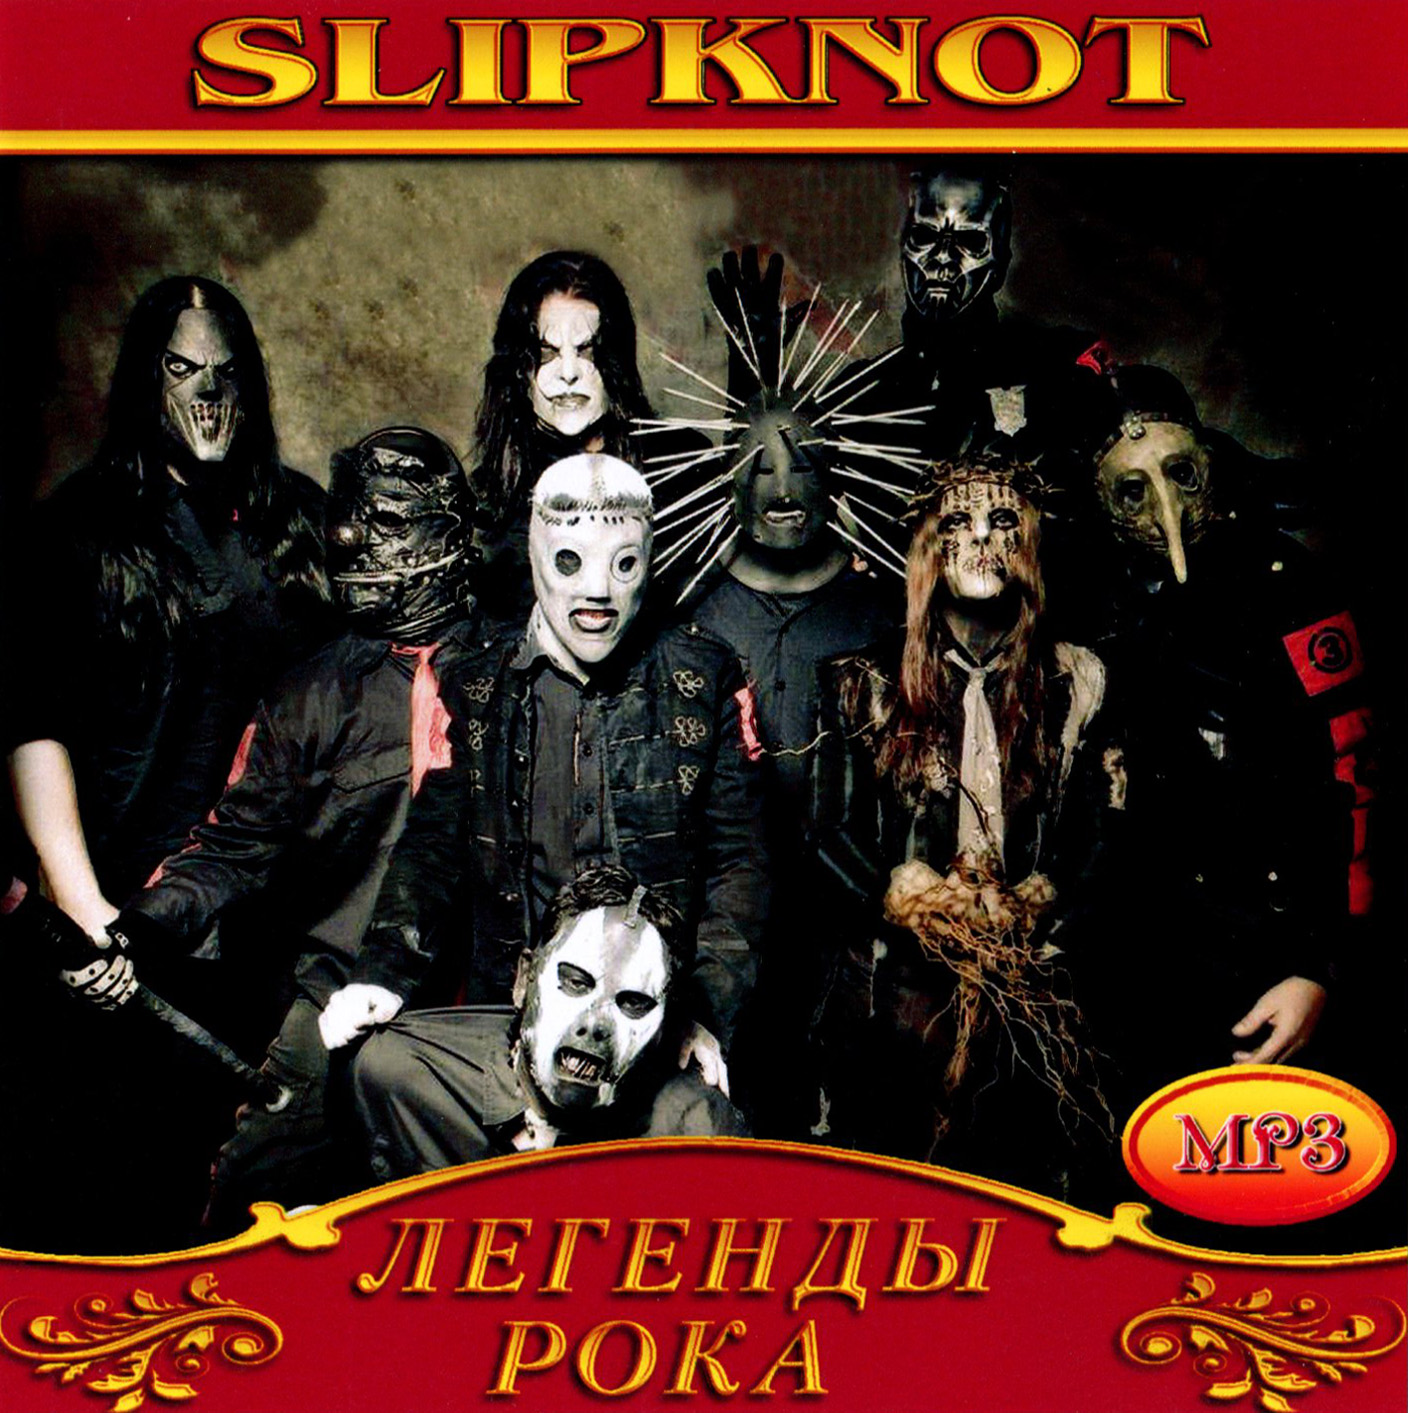 Slipknot [mp3]